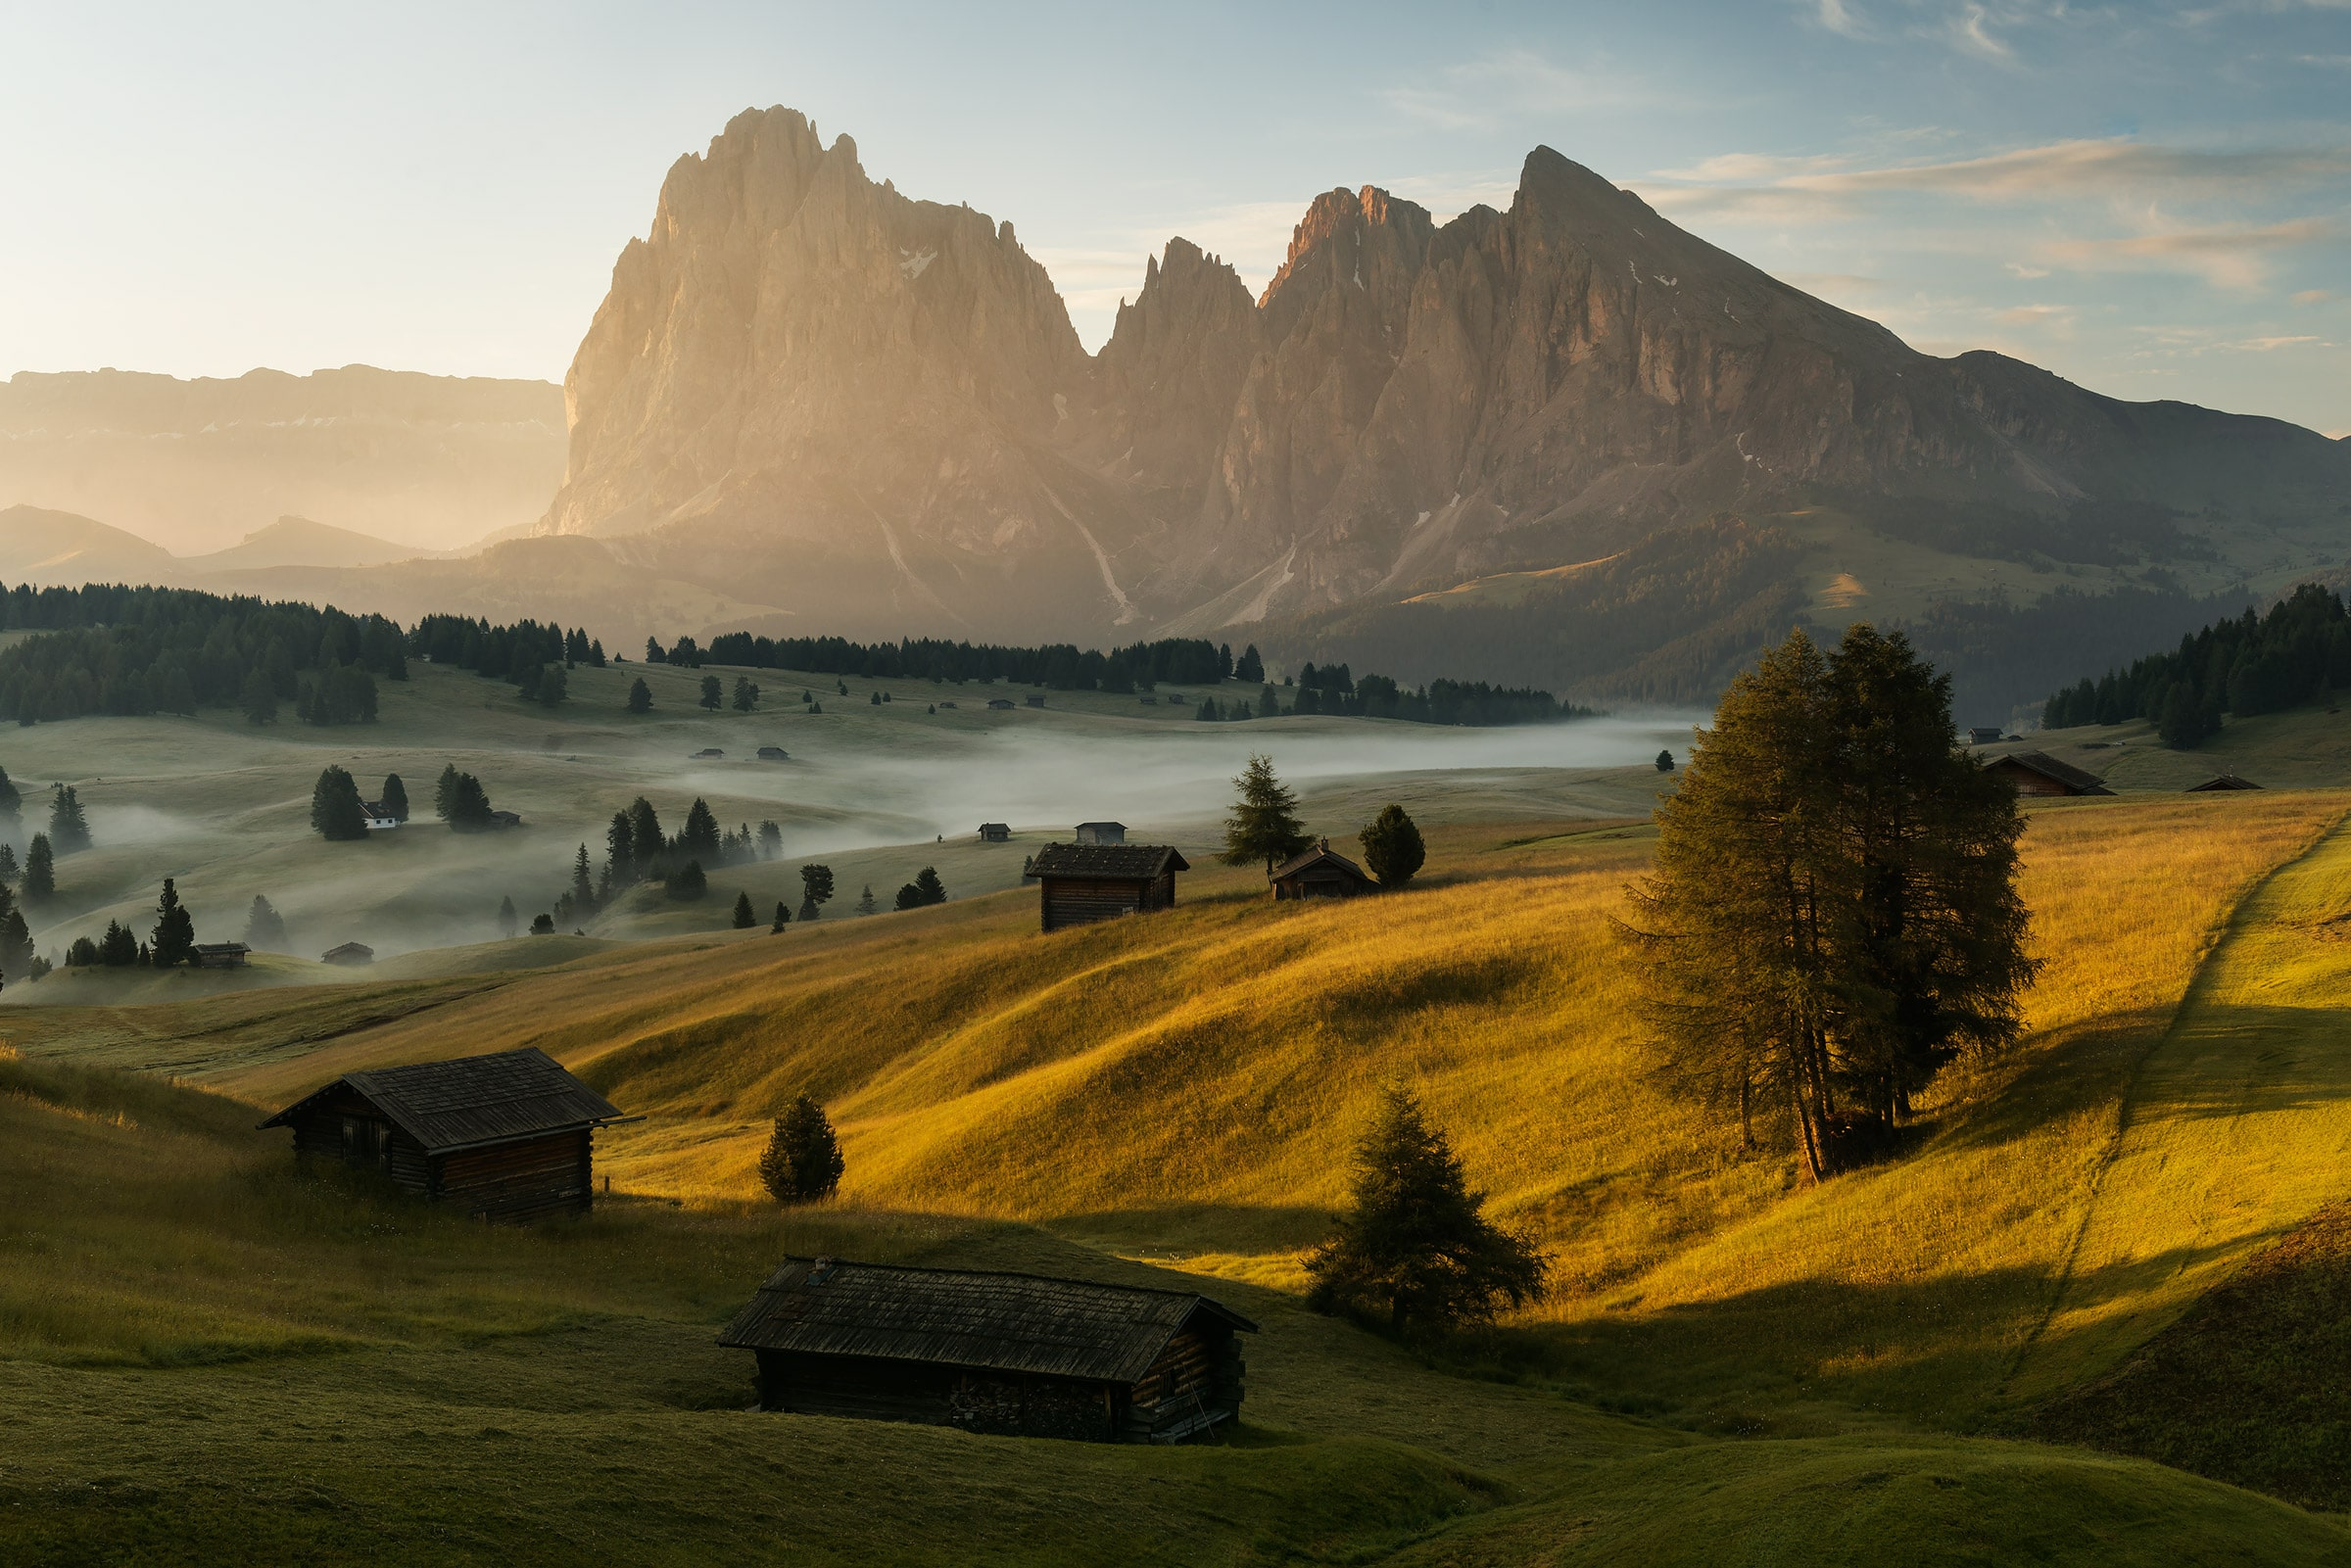 Seiser Alm (Alpe di Siusi) during a summer sunrise in our Dolomites photography tour